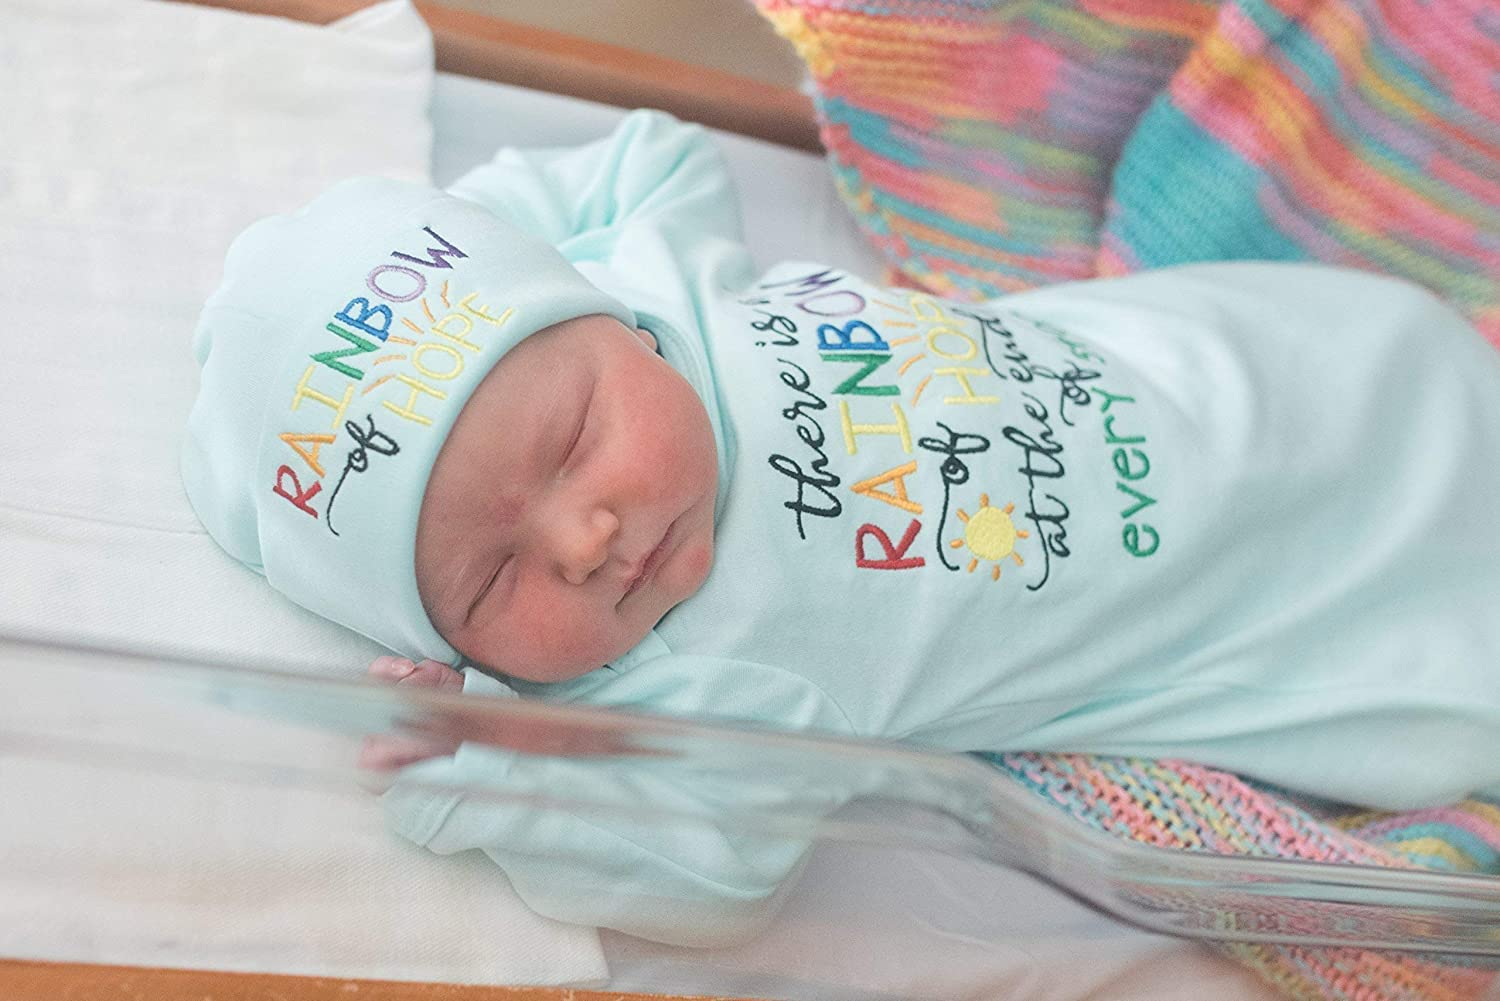 b7ece59e299 Newborn Baby Unisex Infant Gown and Hat Set- Rainbow Baby - Baby Shower Gift  - larger image